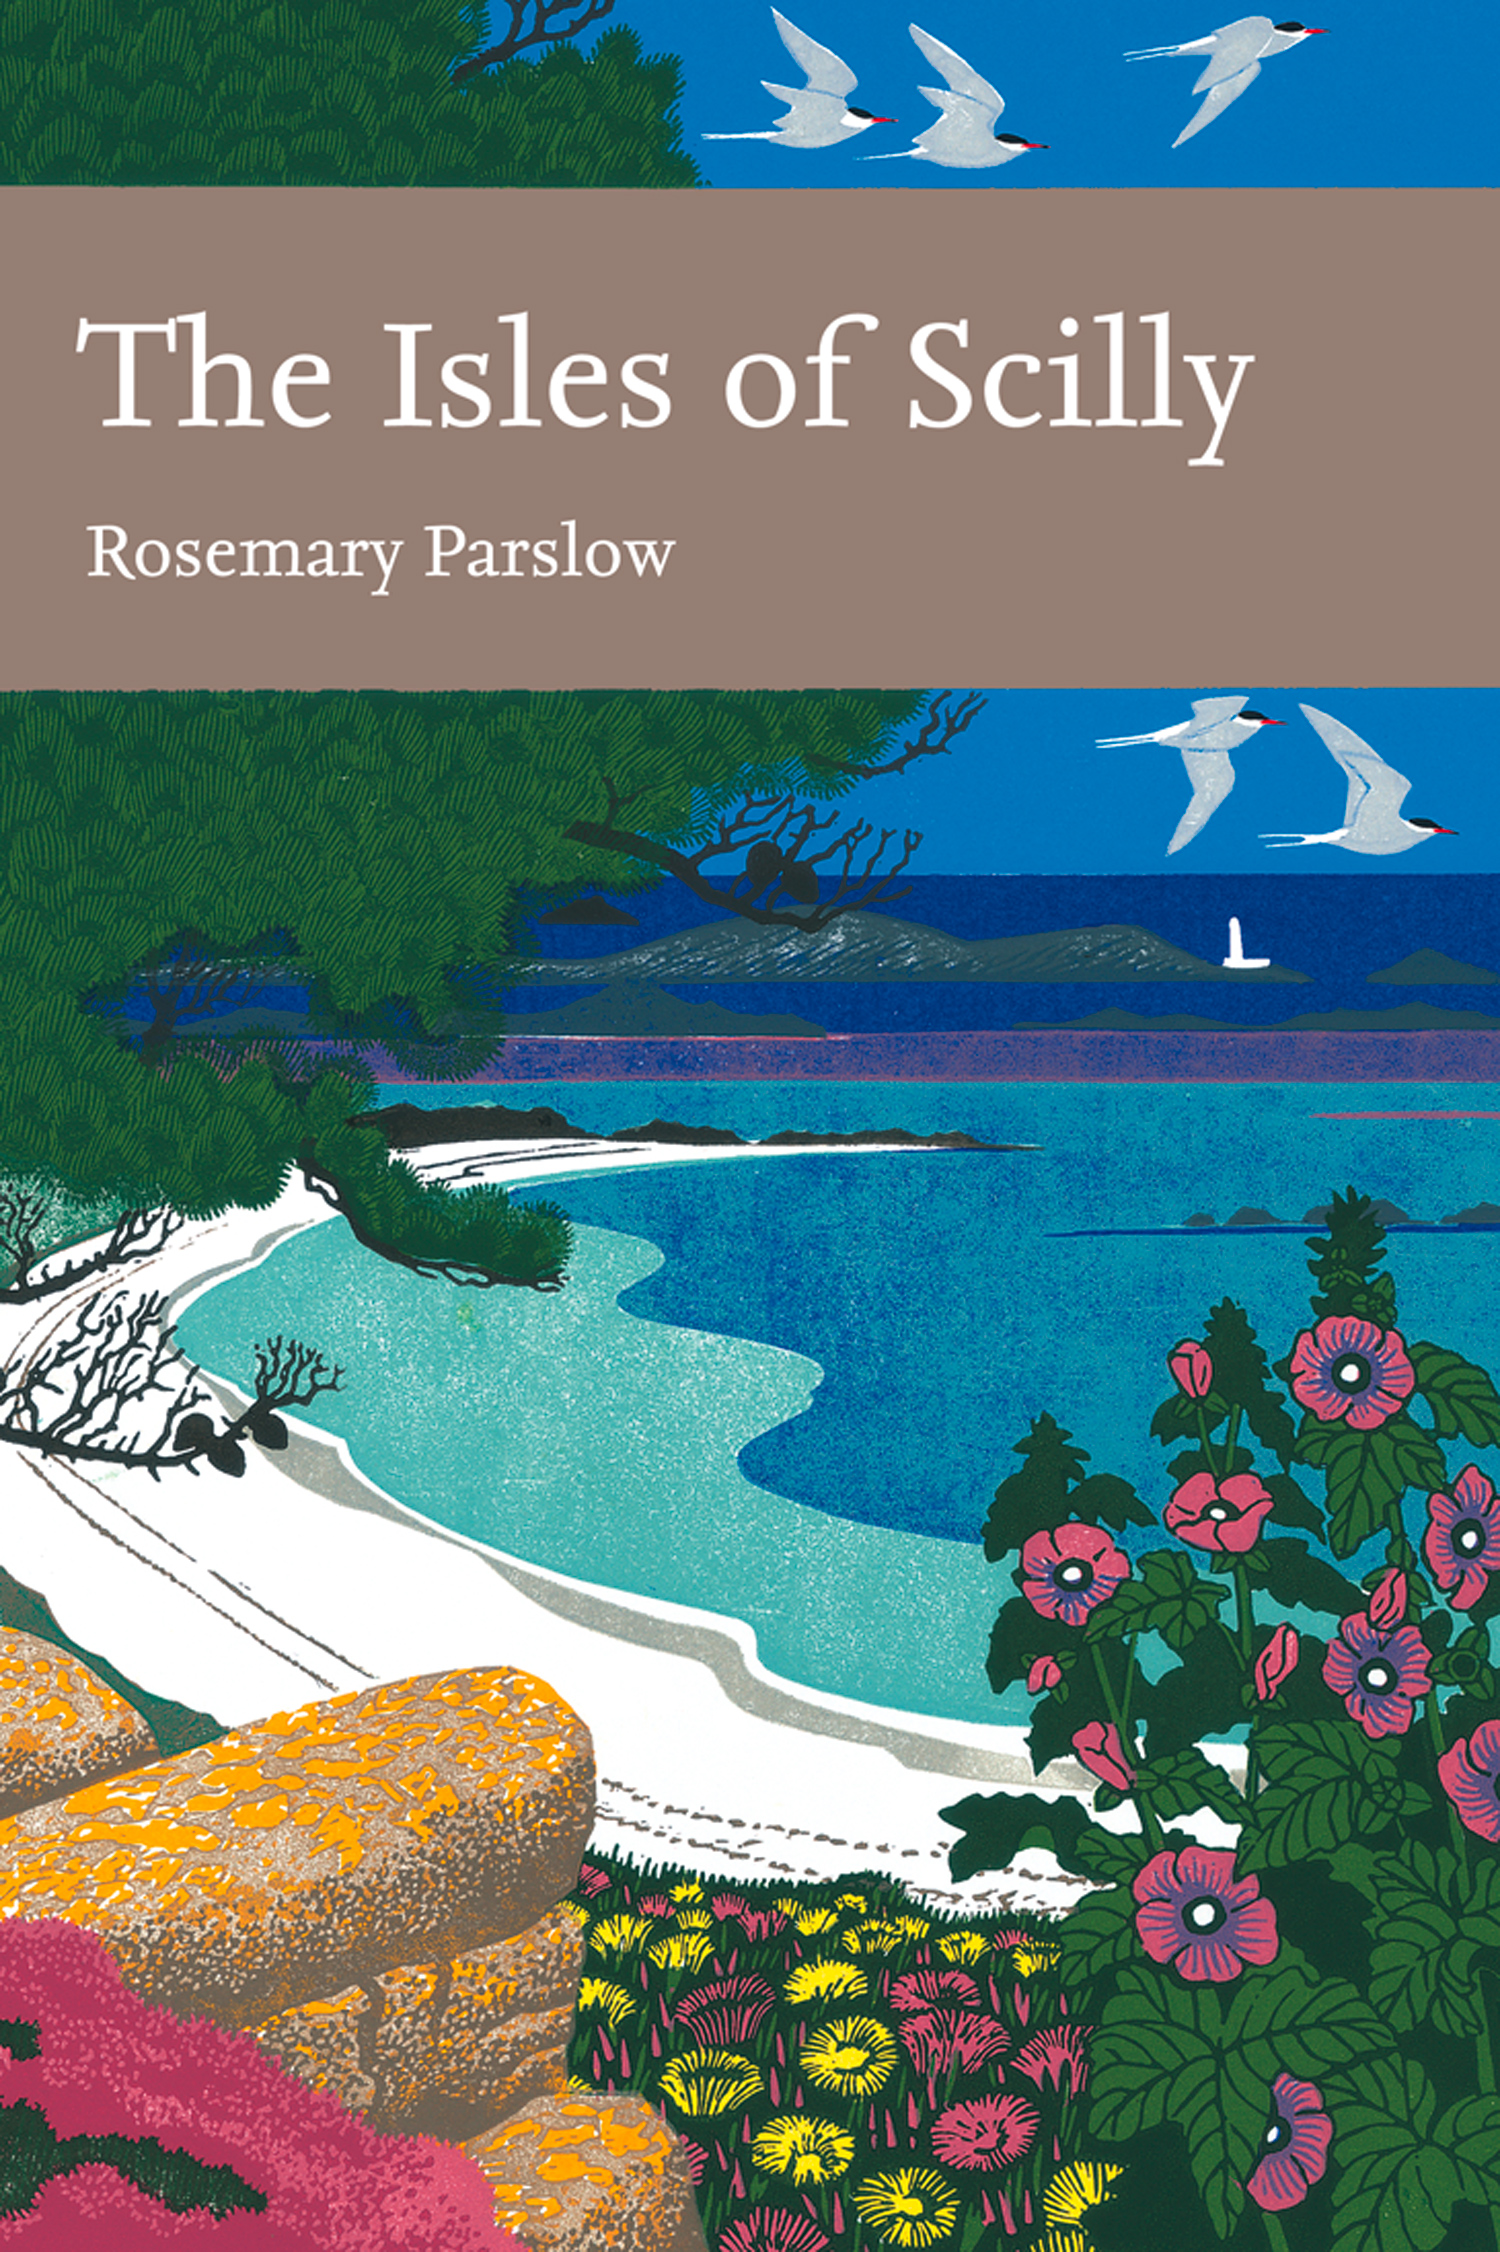 The Isles of Scilly (Collins New Naturalist Library, Book 103)